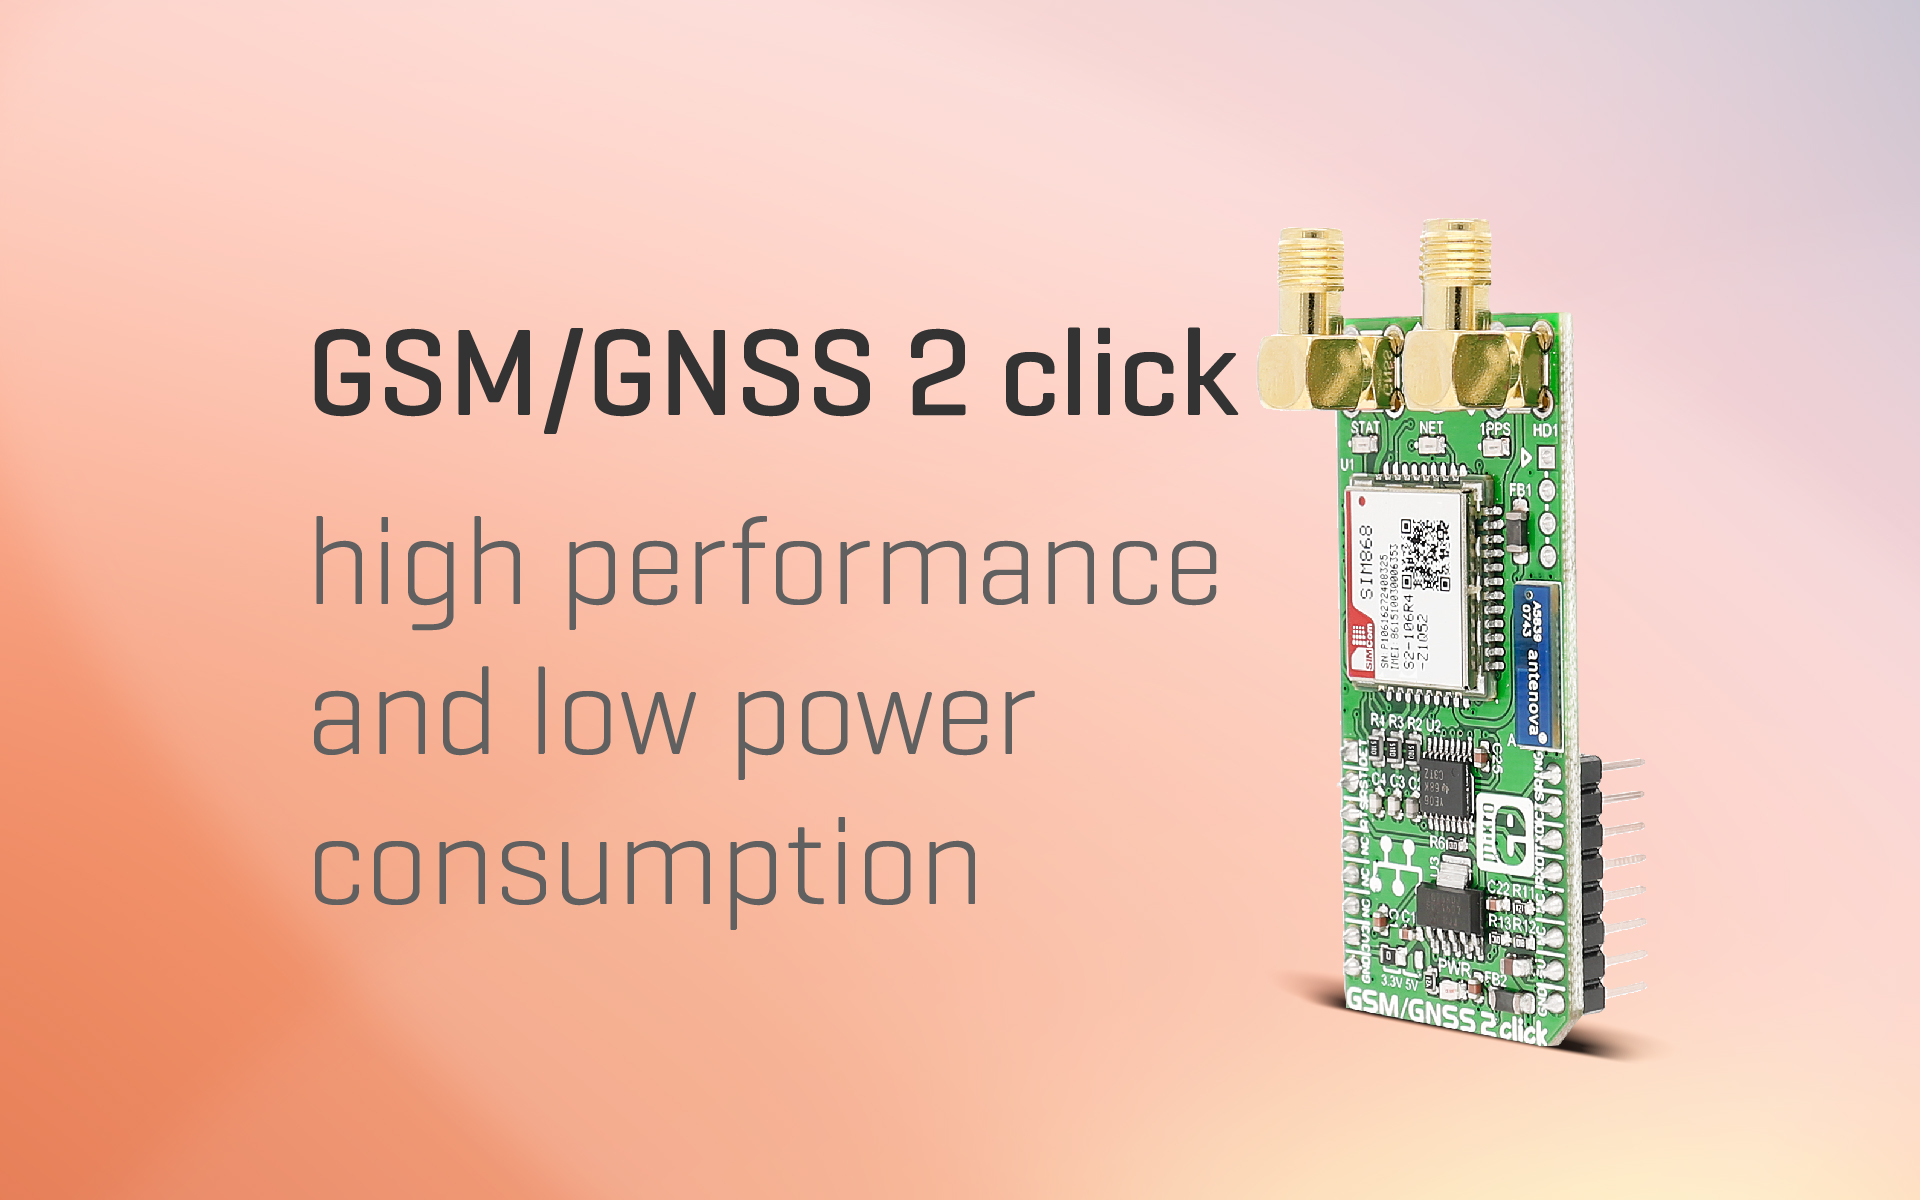 GSM/GNSS 2 click — asset tracking, mobile communication and more